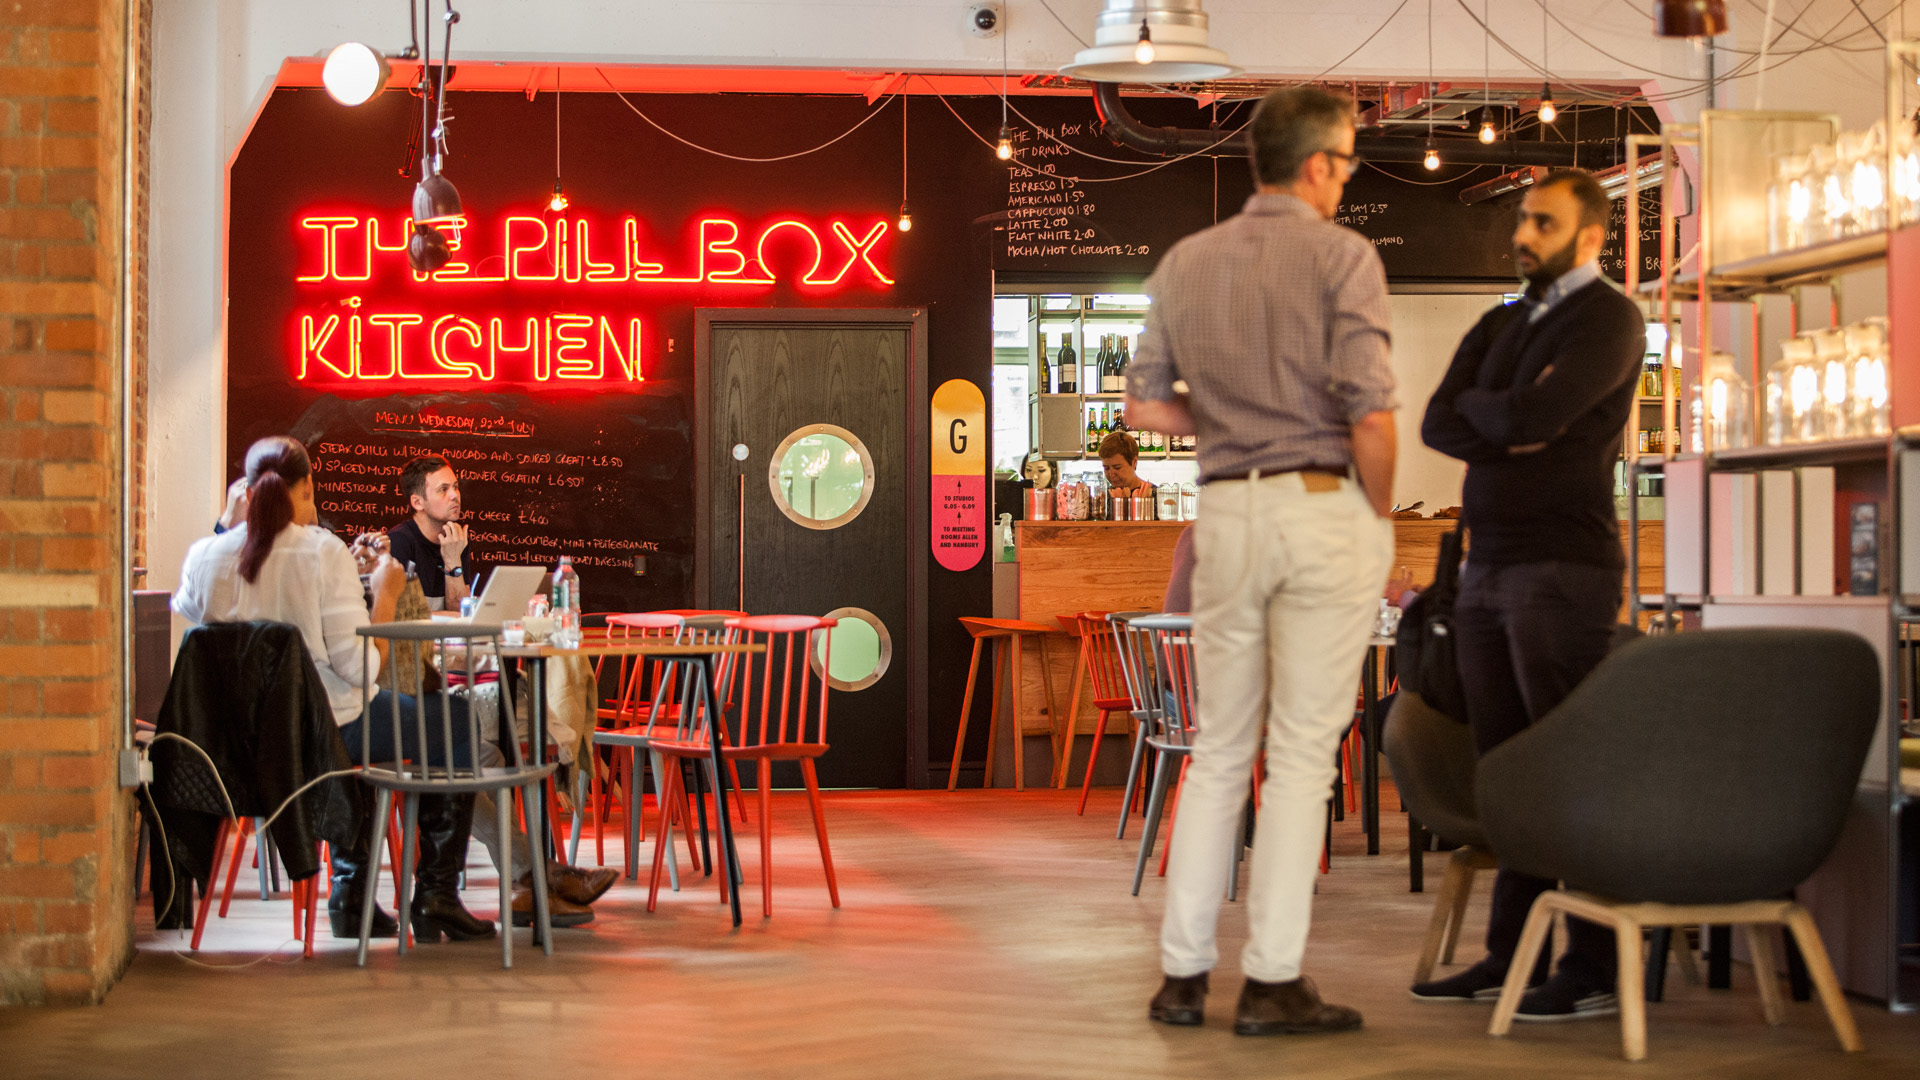 The Pill Box café area